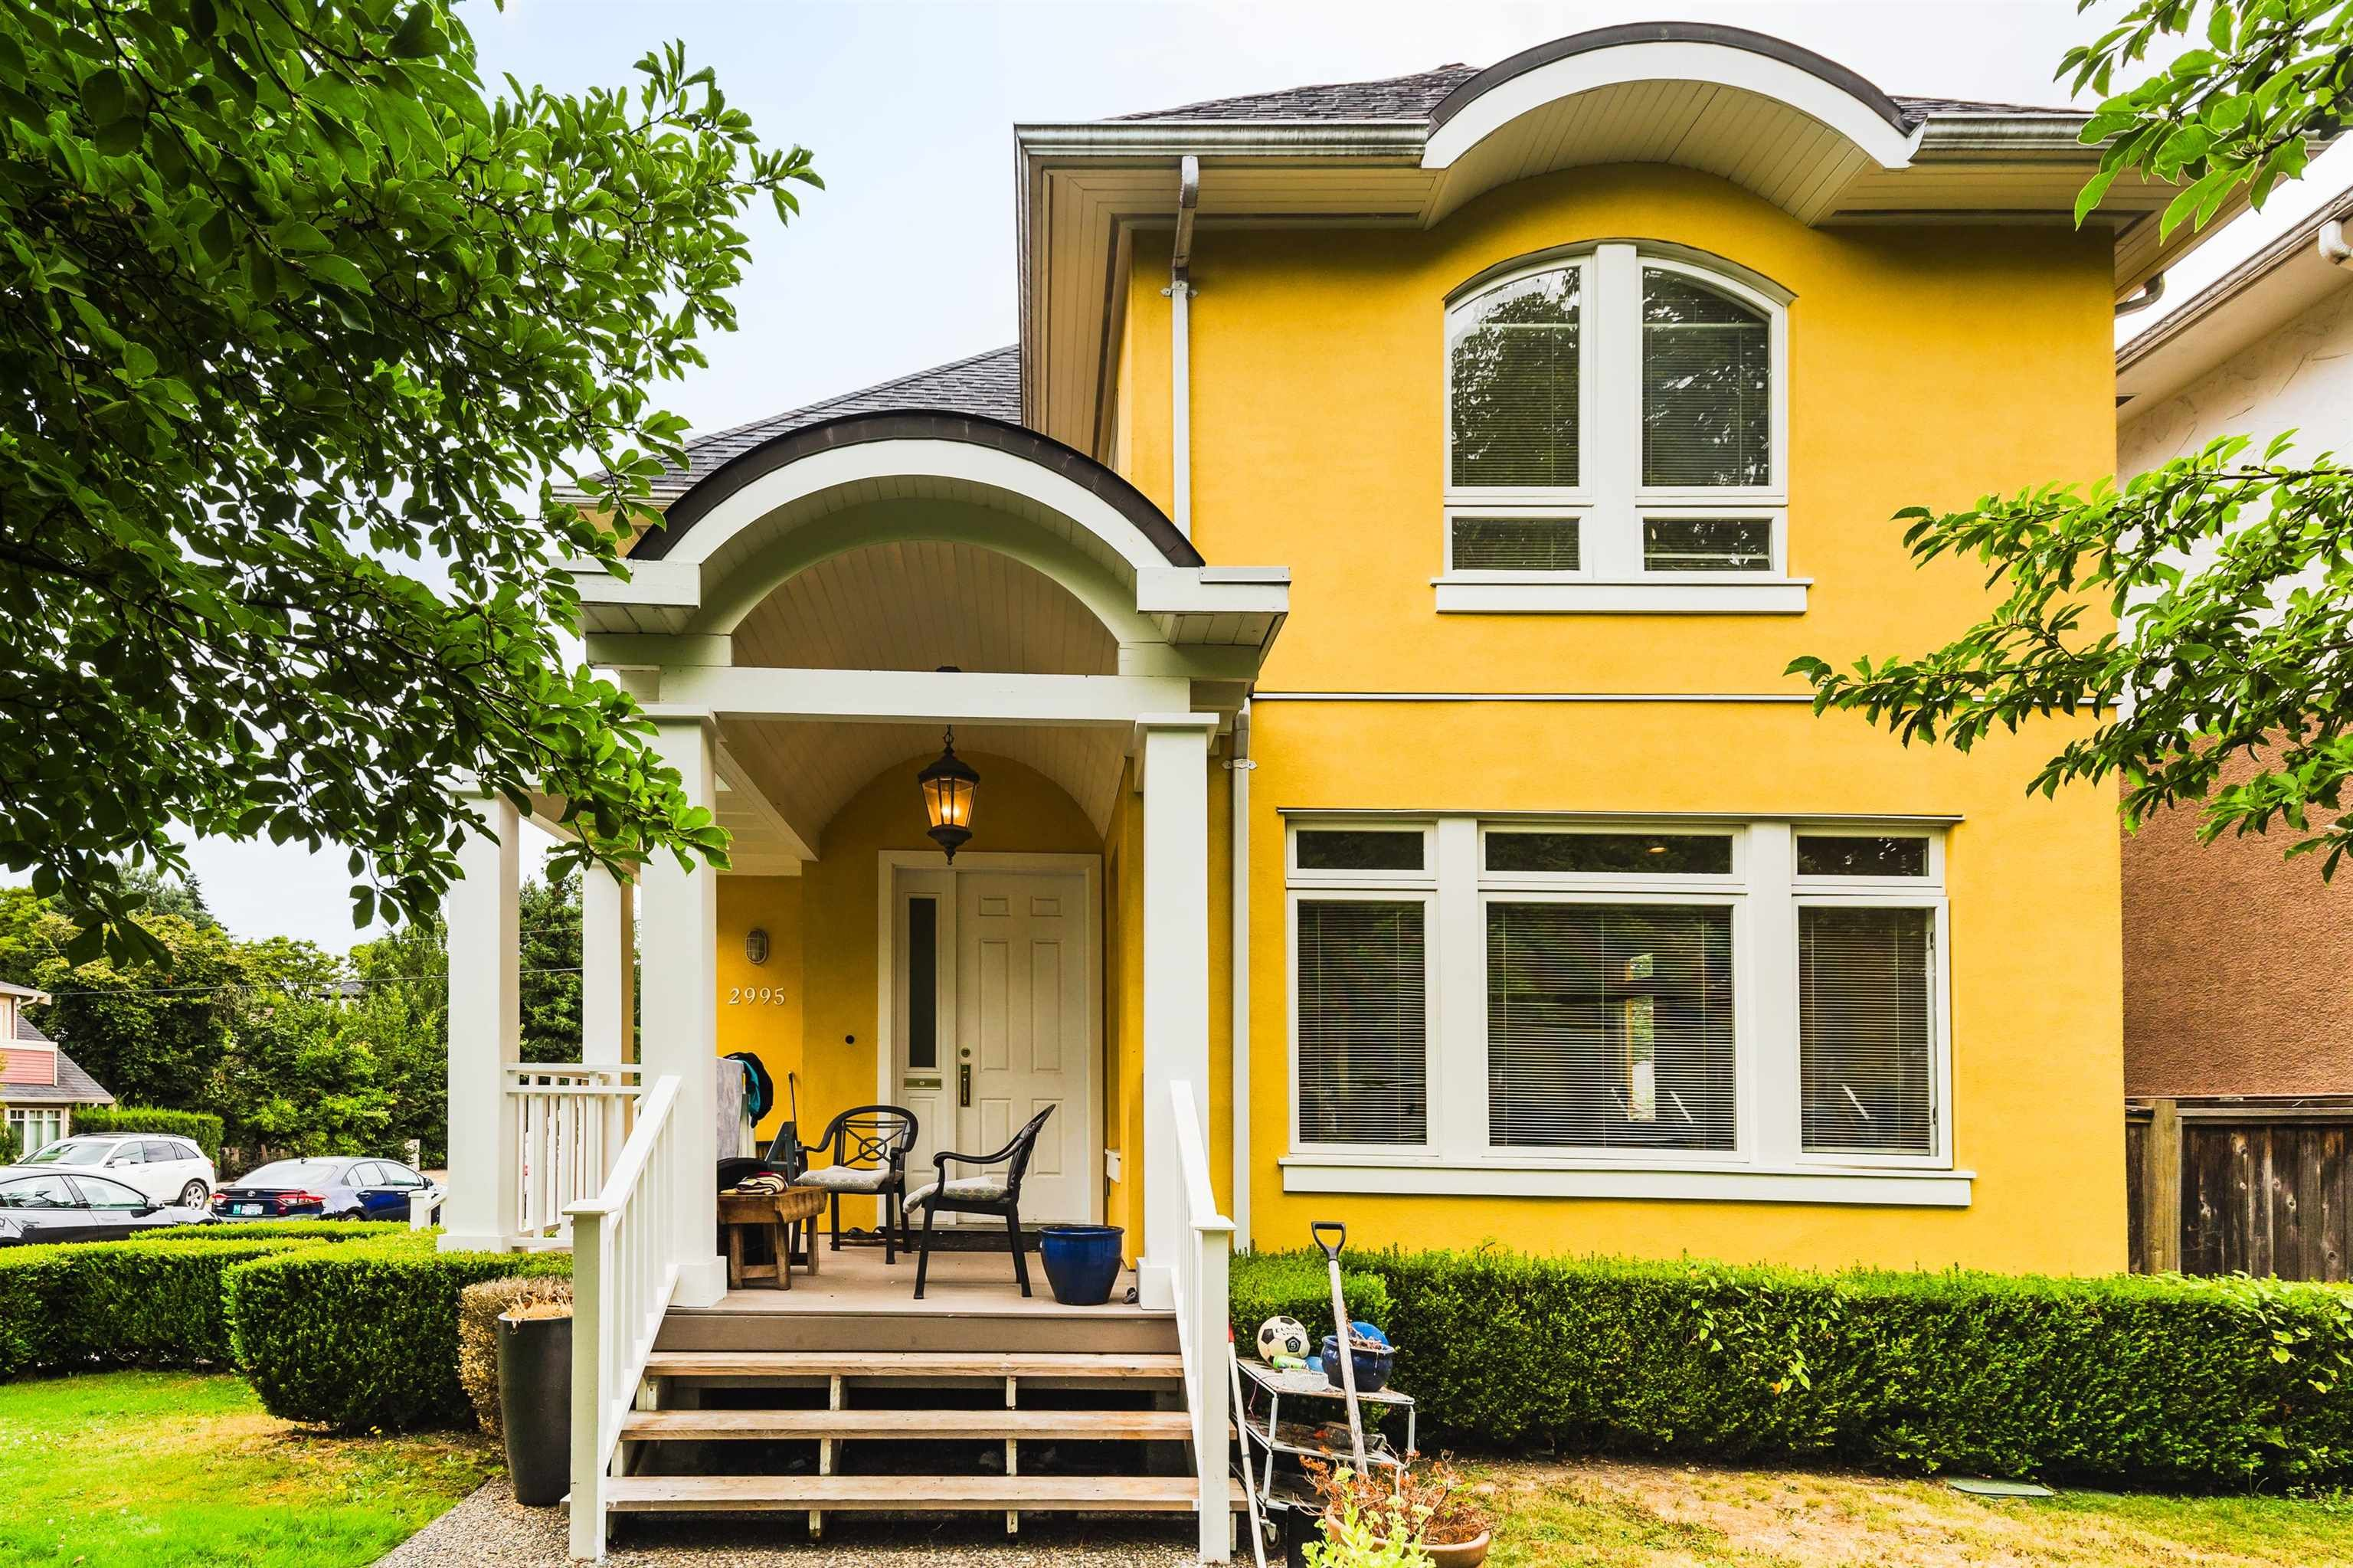 Main Photo: 2995 W 12TH Avenue in Vancouver: Kitsilano House for sale (Vancouver West)  : MLS®# R2610612